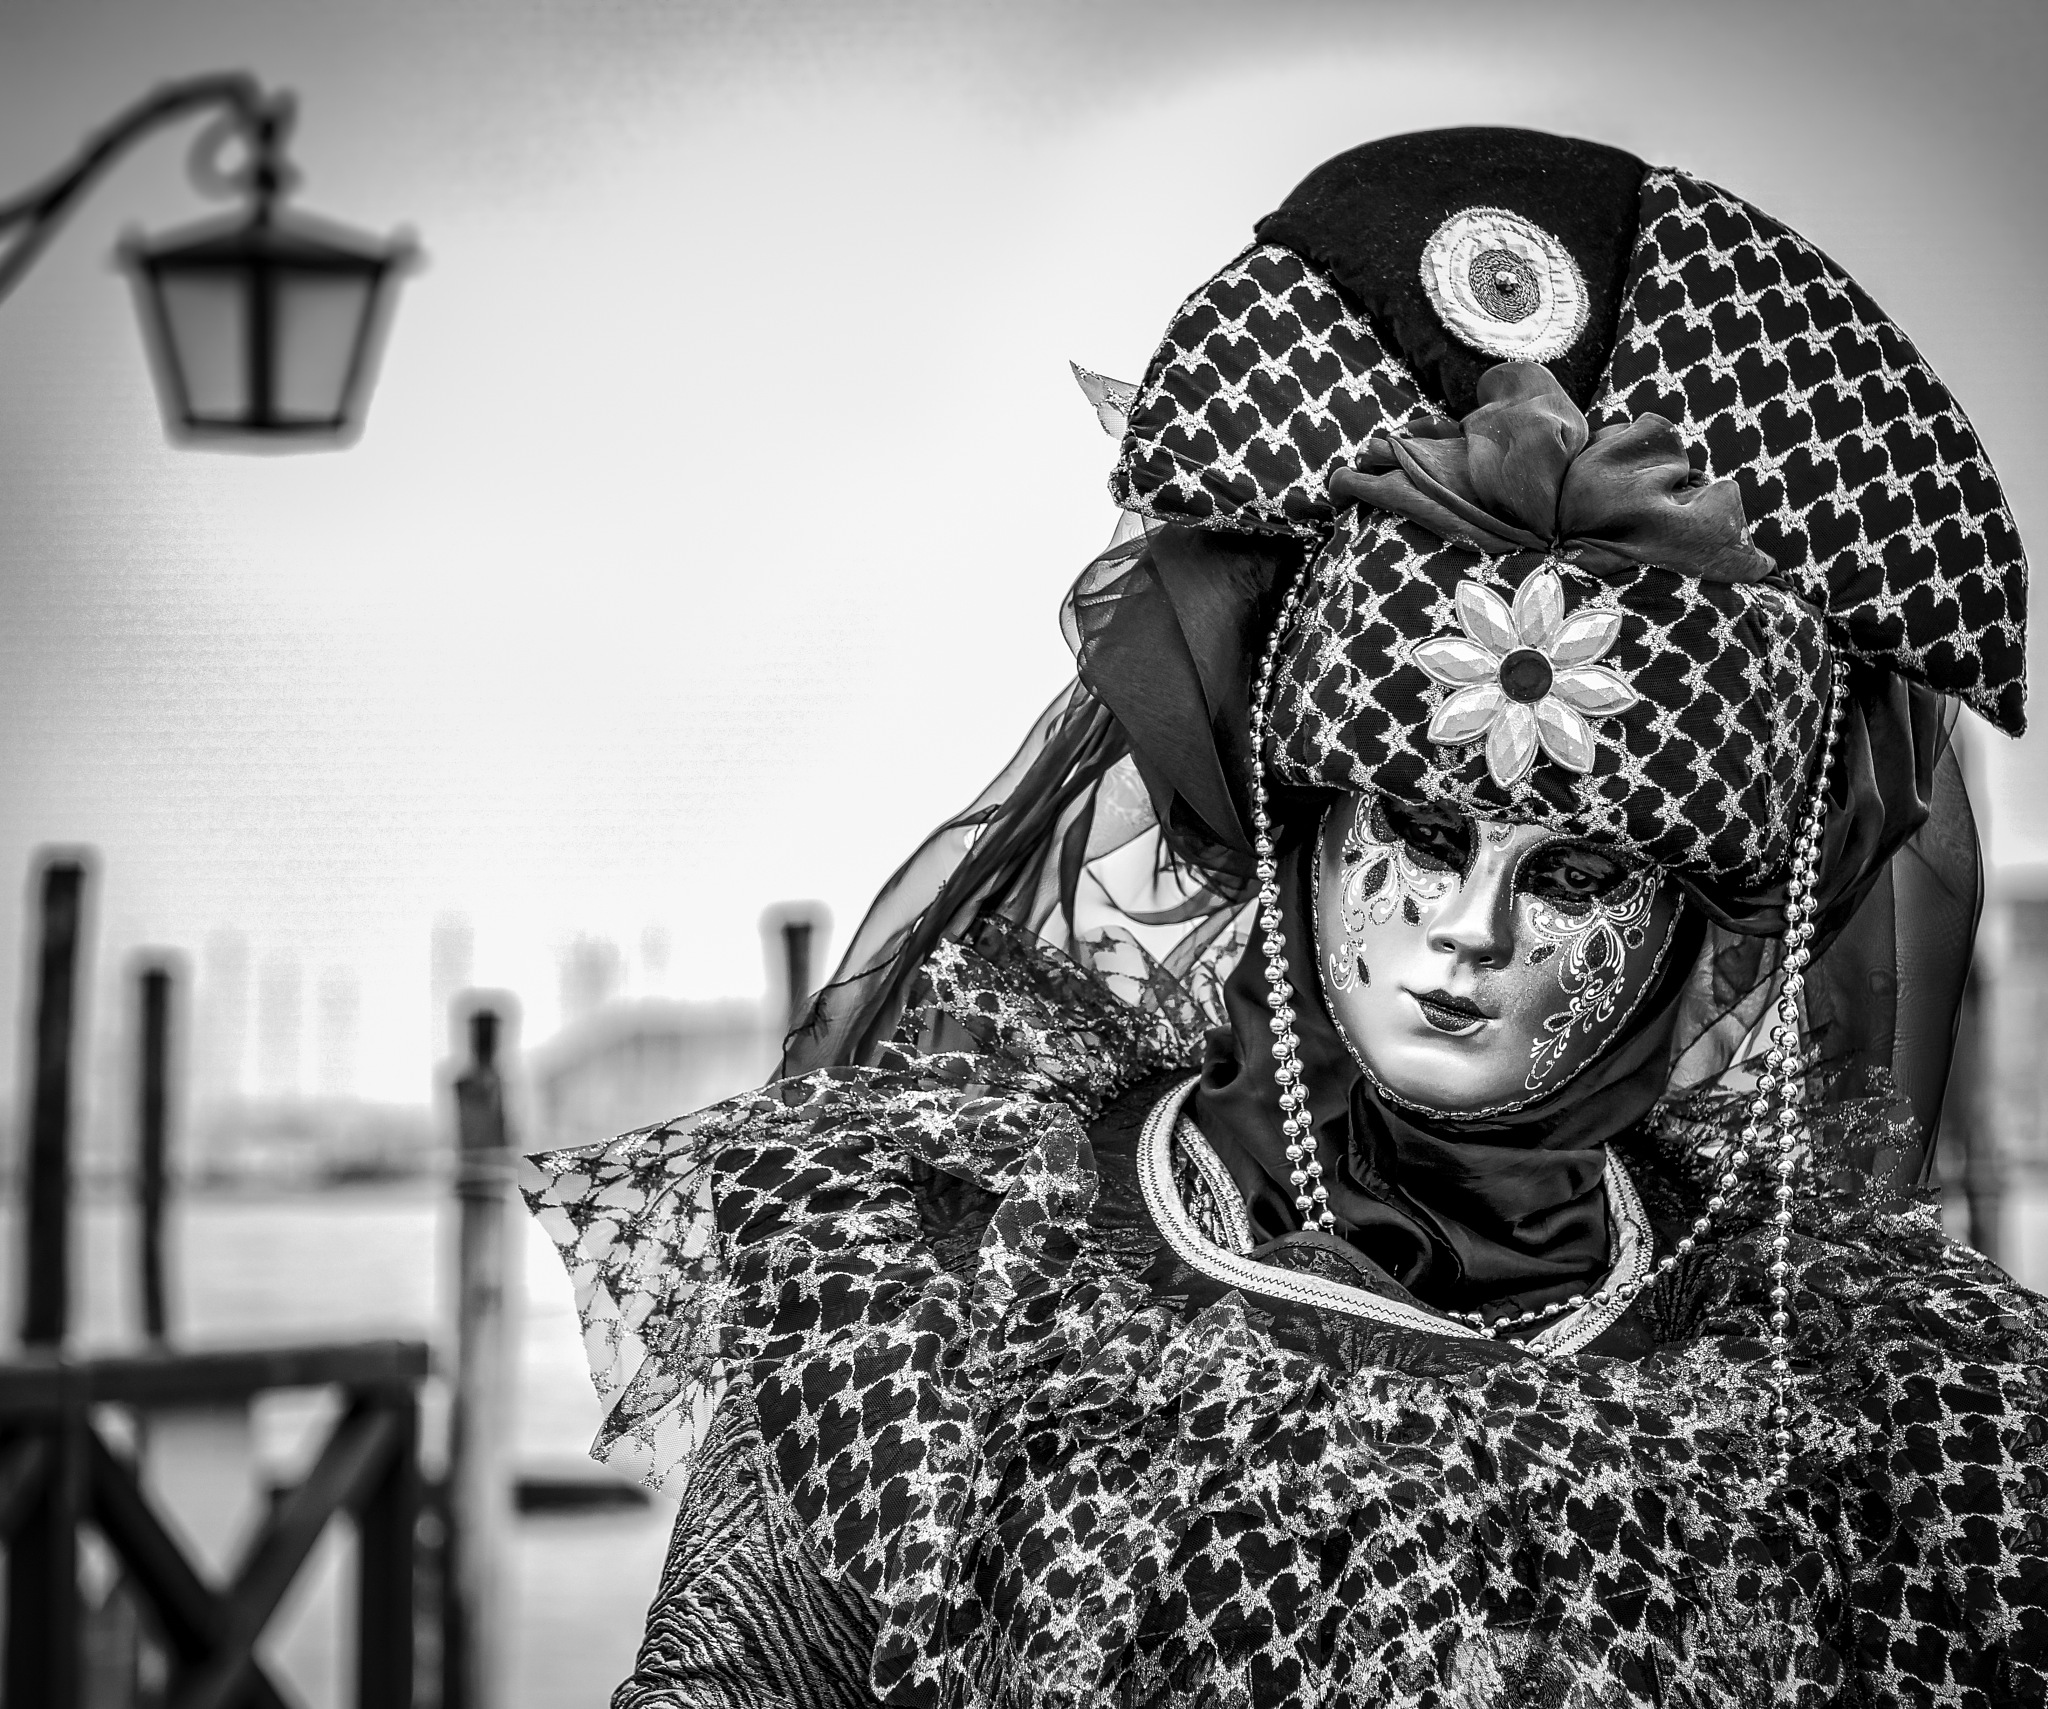 Venice Carnival Character by jan.murphy30